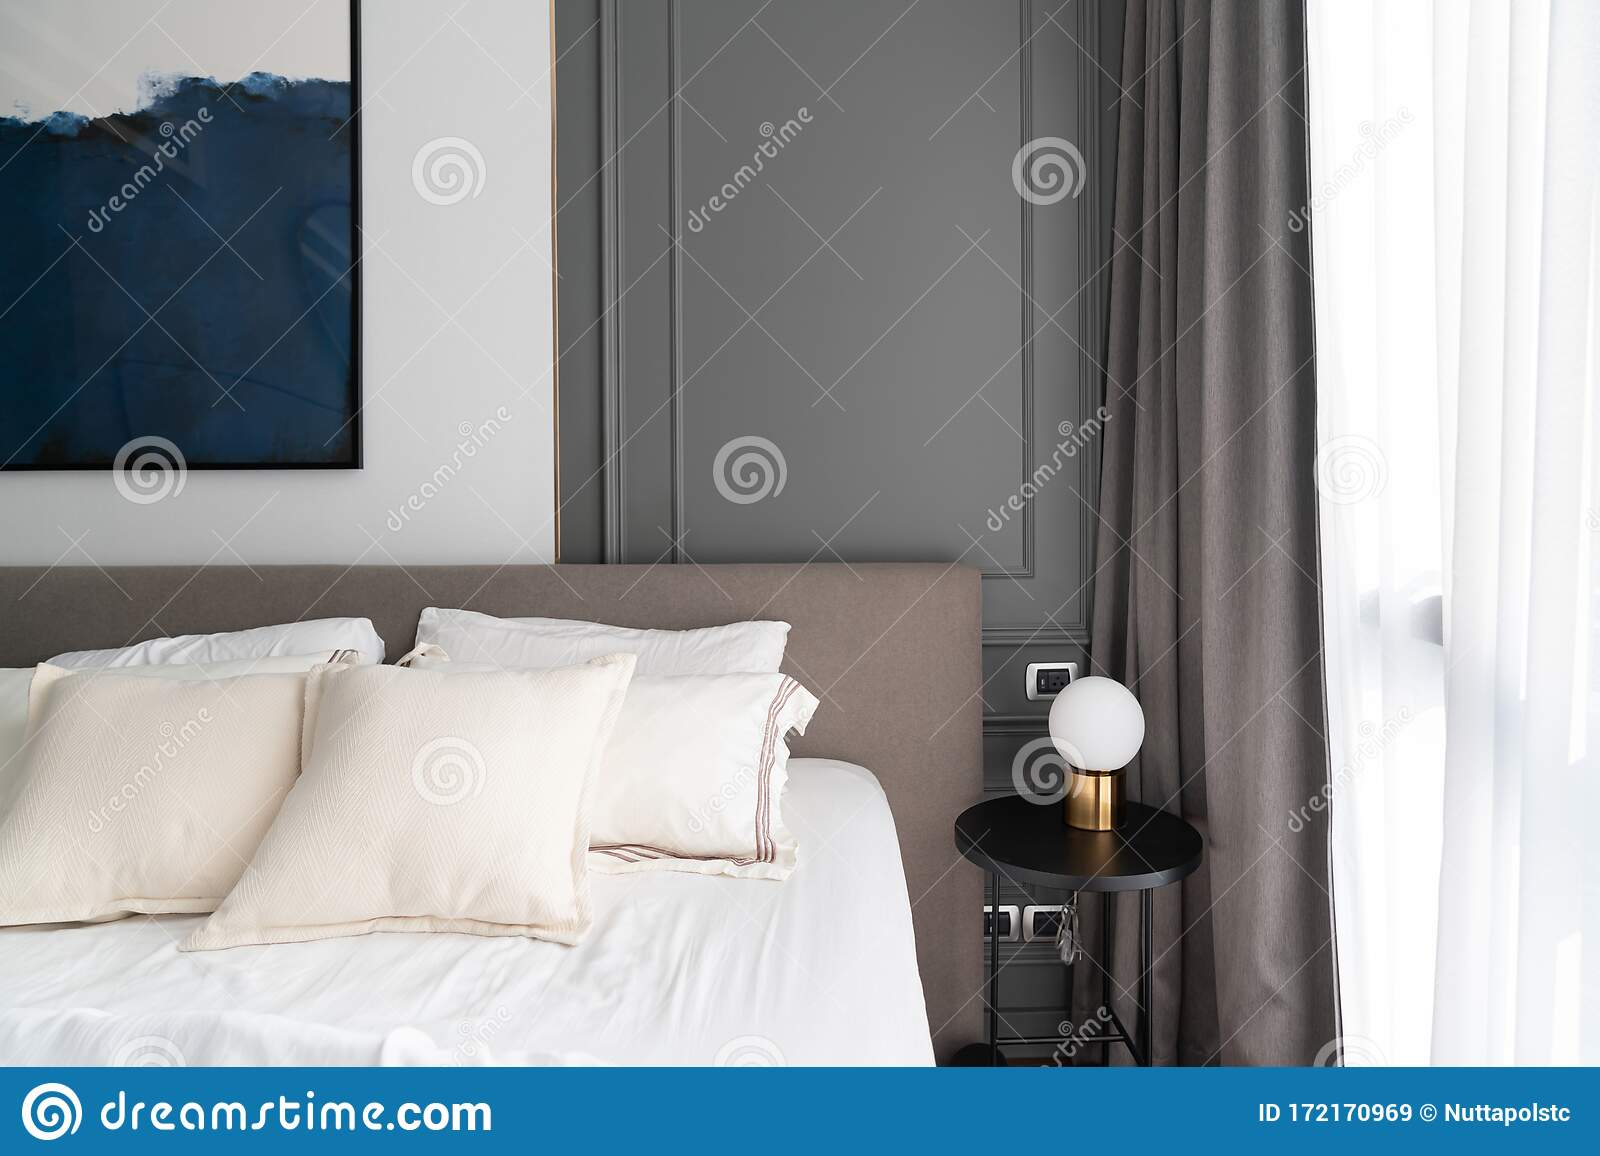 Cozy Bedroom Corner With Modern Brown Fabric Bed Headboard And Comfortable Pillows Setting With Gold Lamp And Modern Plug Install Stock Image Image Of Background Decor 172170969